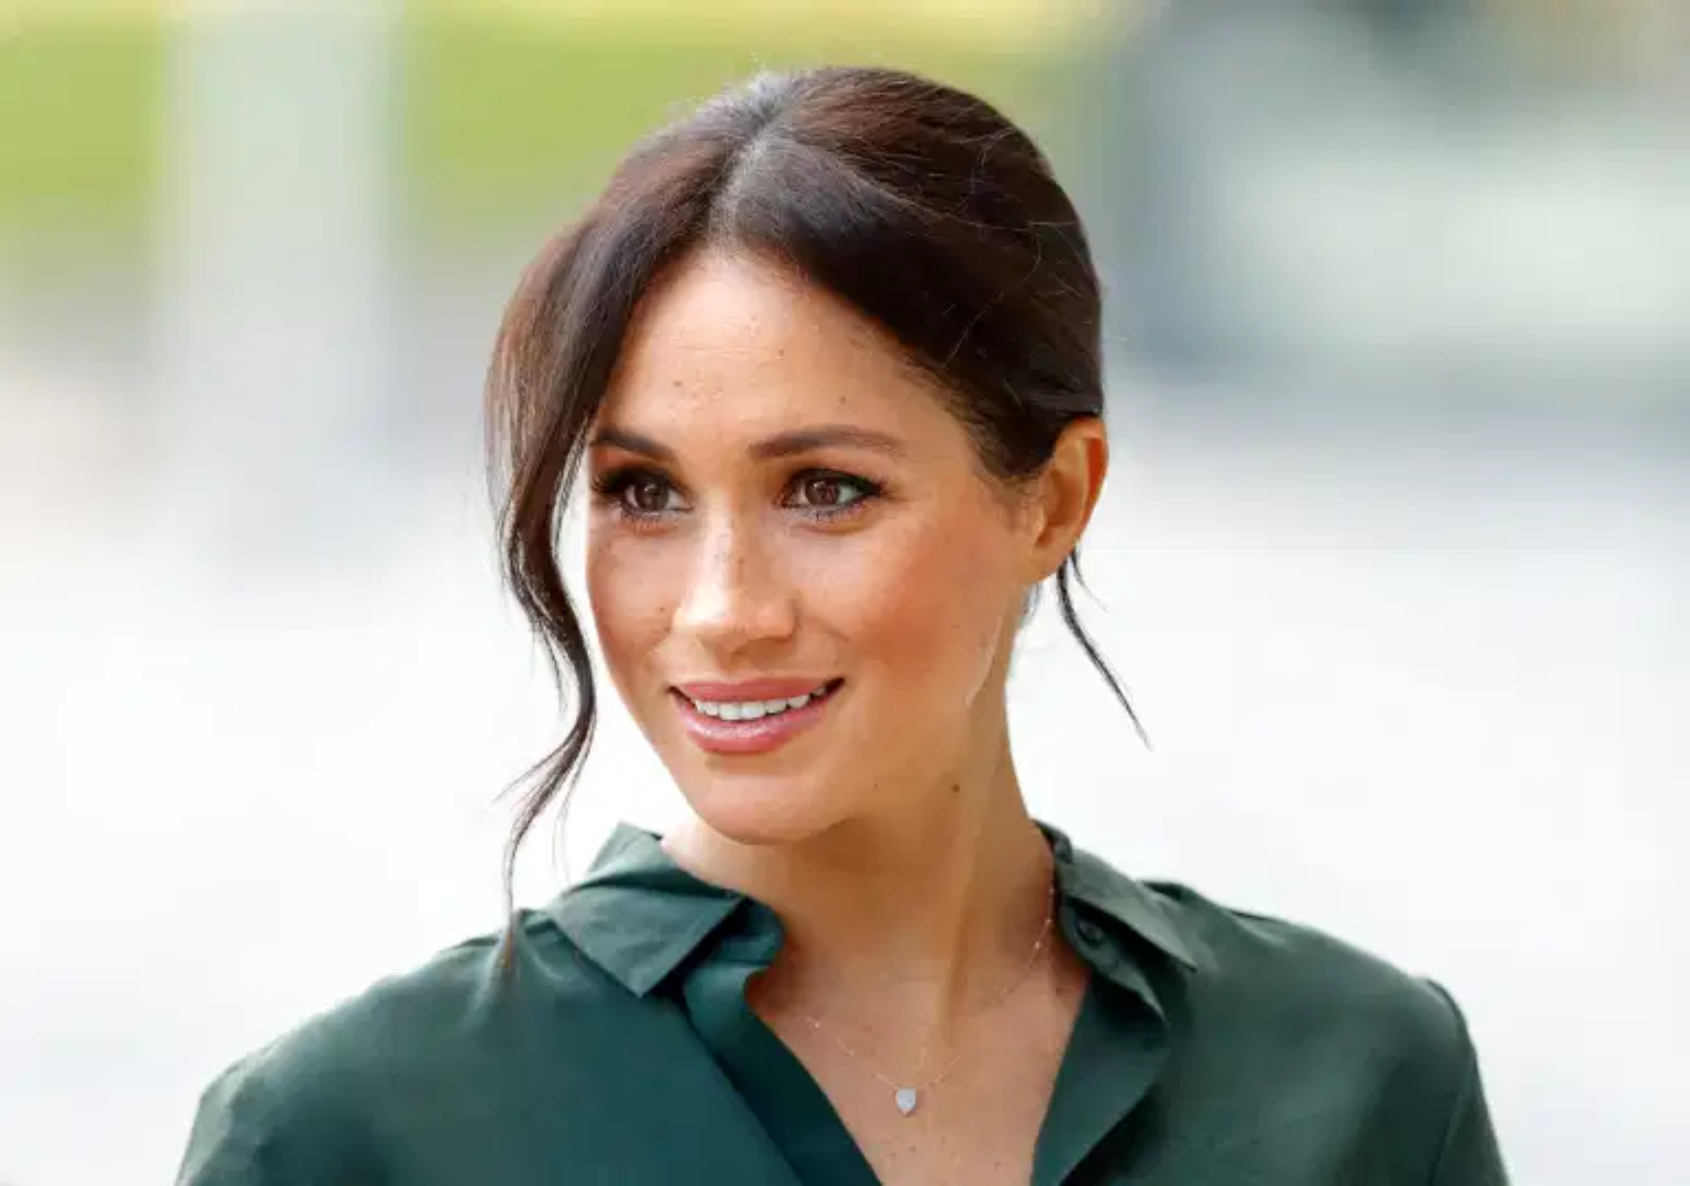 Meghan Markle is now polarising the watch world, too, because of how she wears Princess Diana's gold Cartier